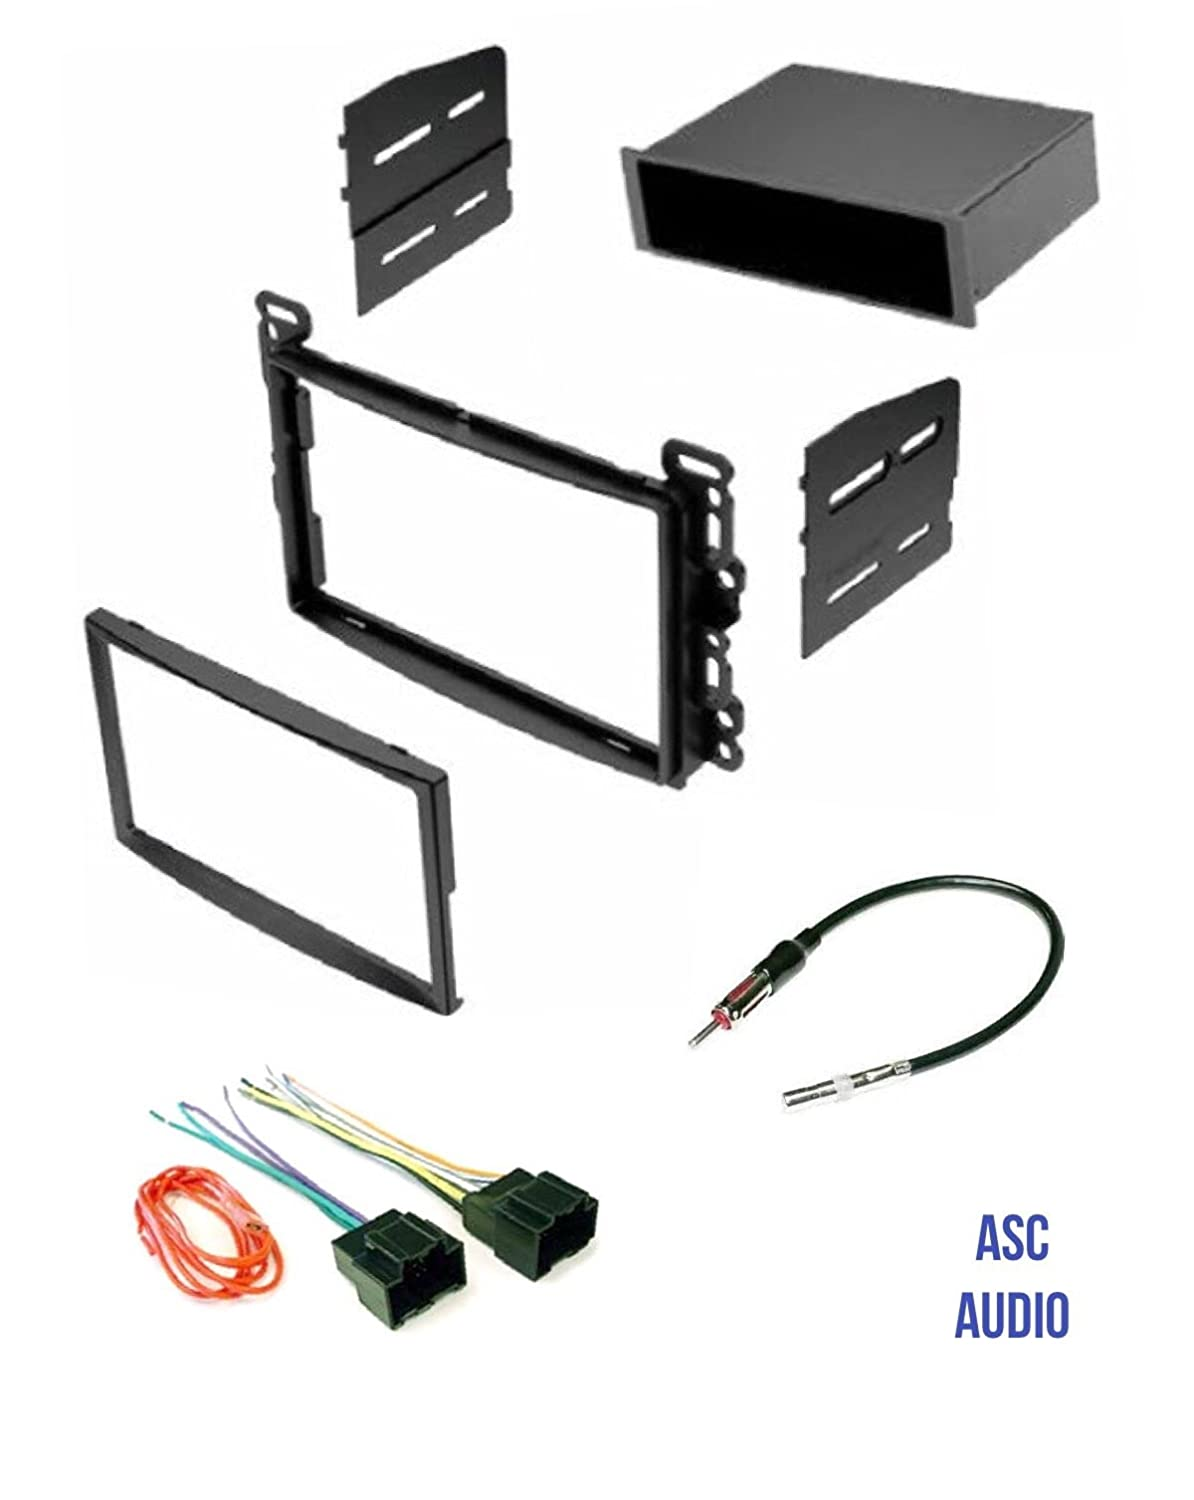 Asc Audio Car Stereo Dash Kit Wire Harness And Antenna 2008 Pontiac G5 Adapter For Some Chevrolet Saturn Vehicles Compatible Listed Below